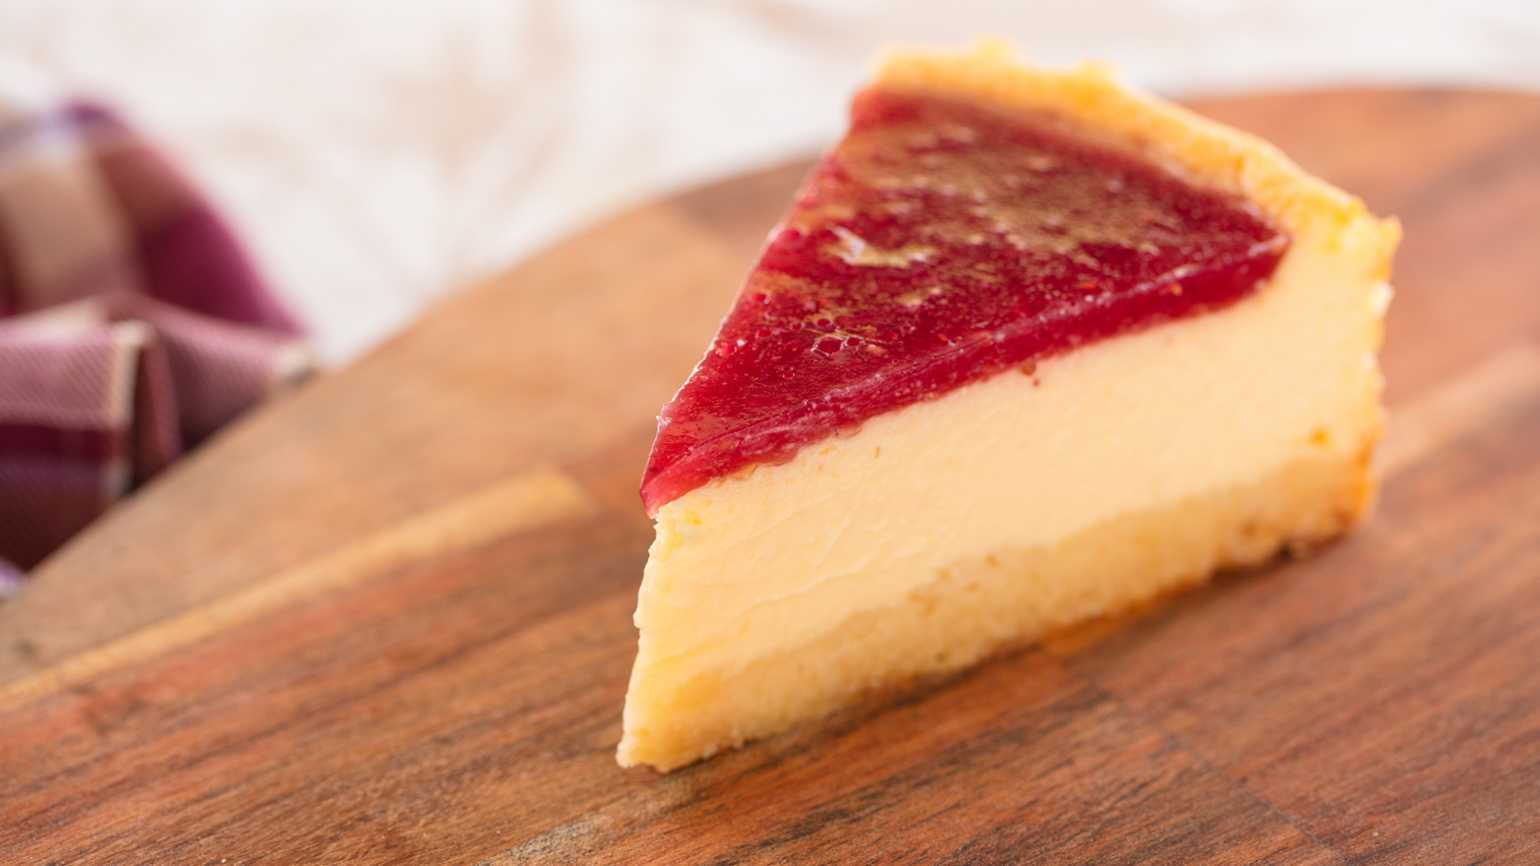 A slice of strawberry cheesecake on a wooden platter.